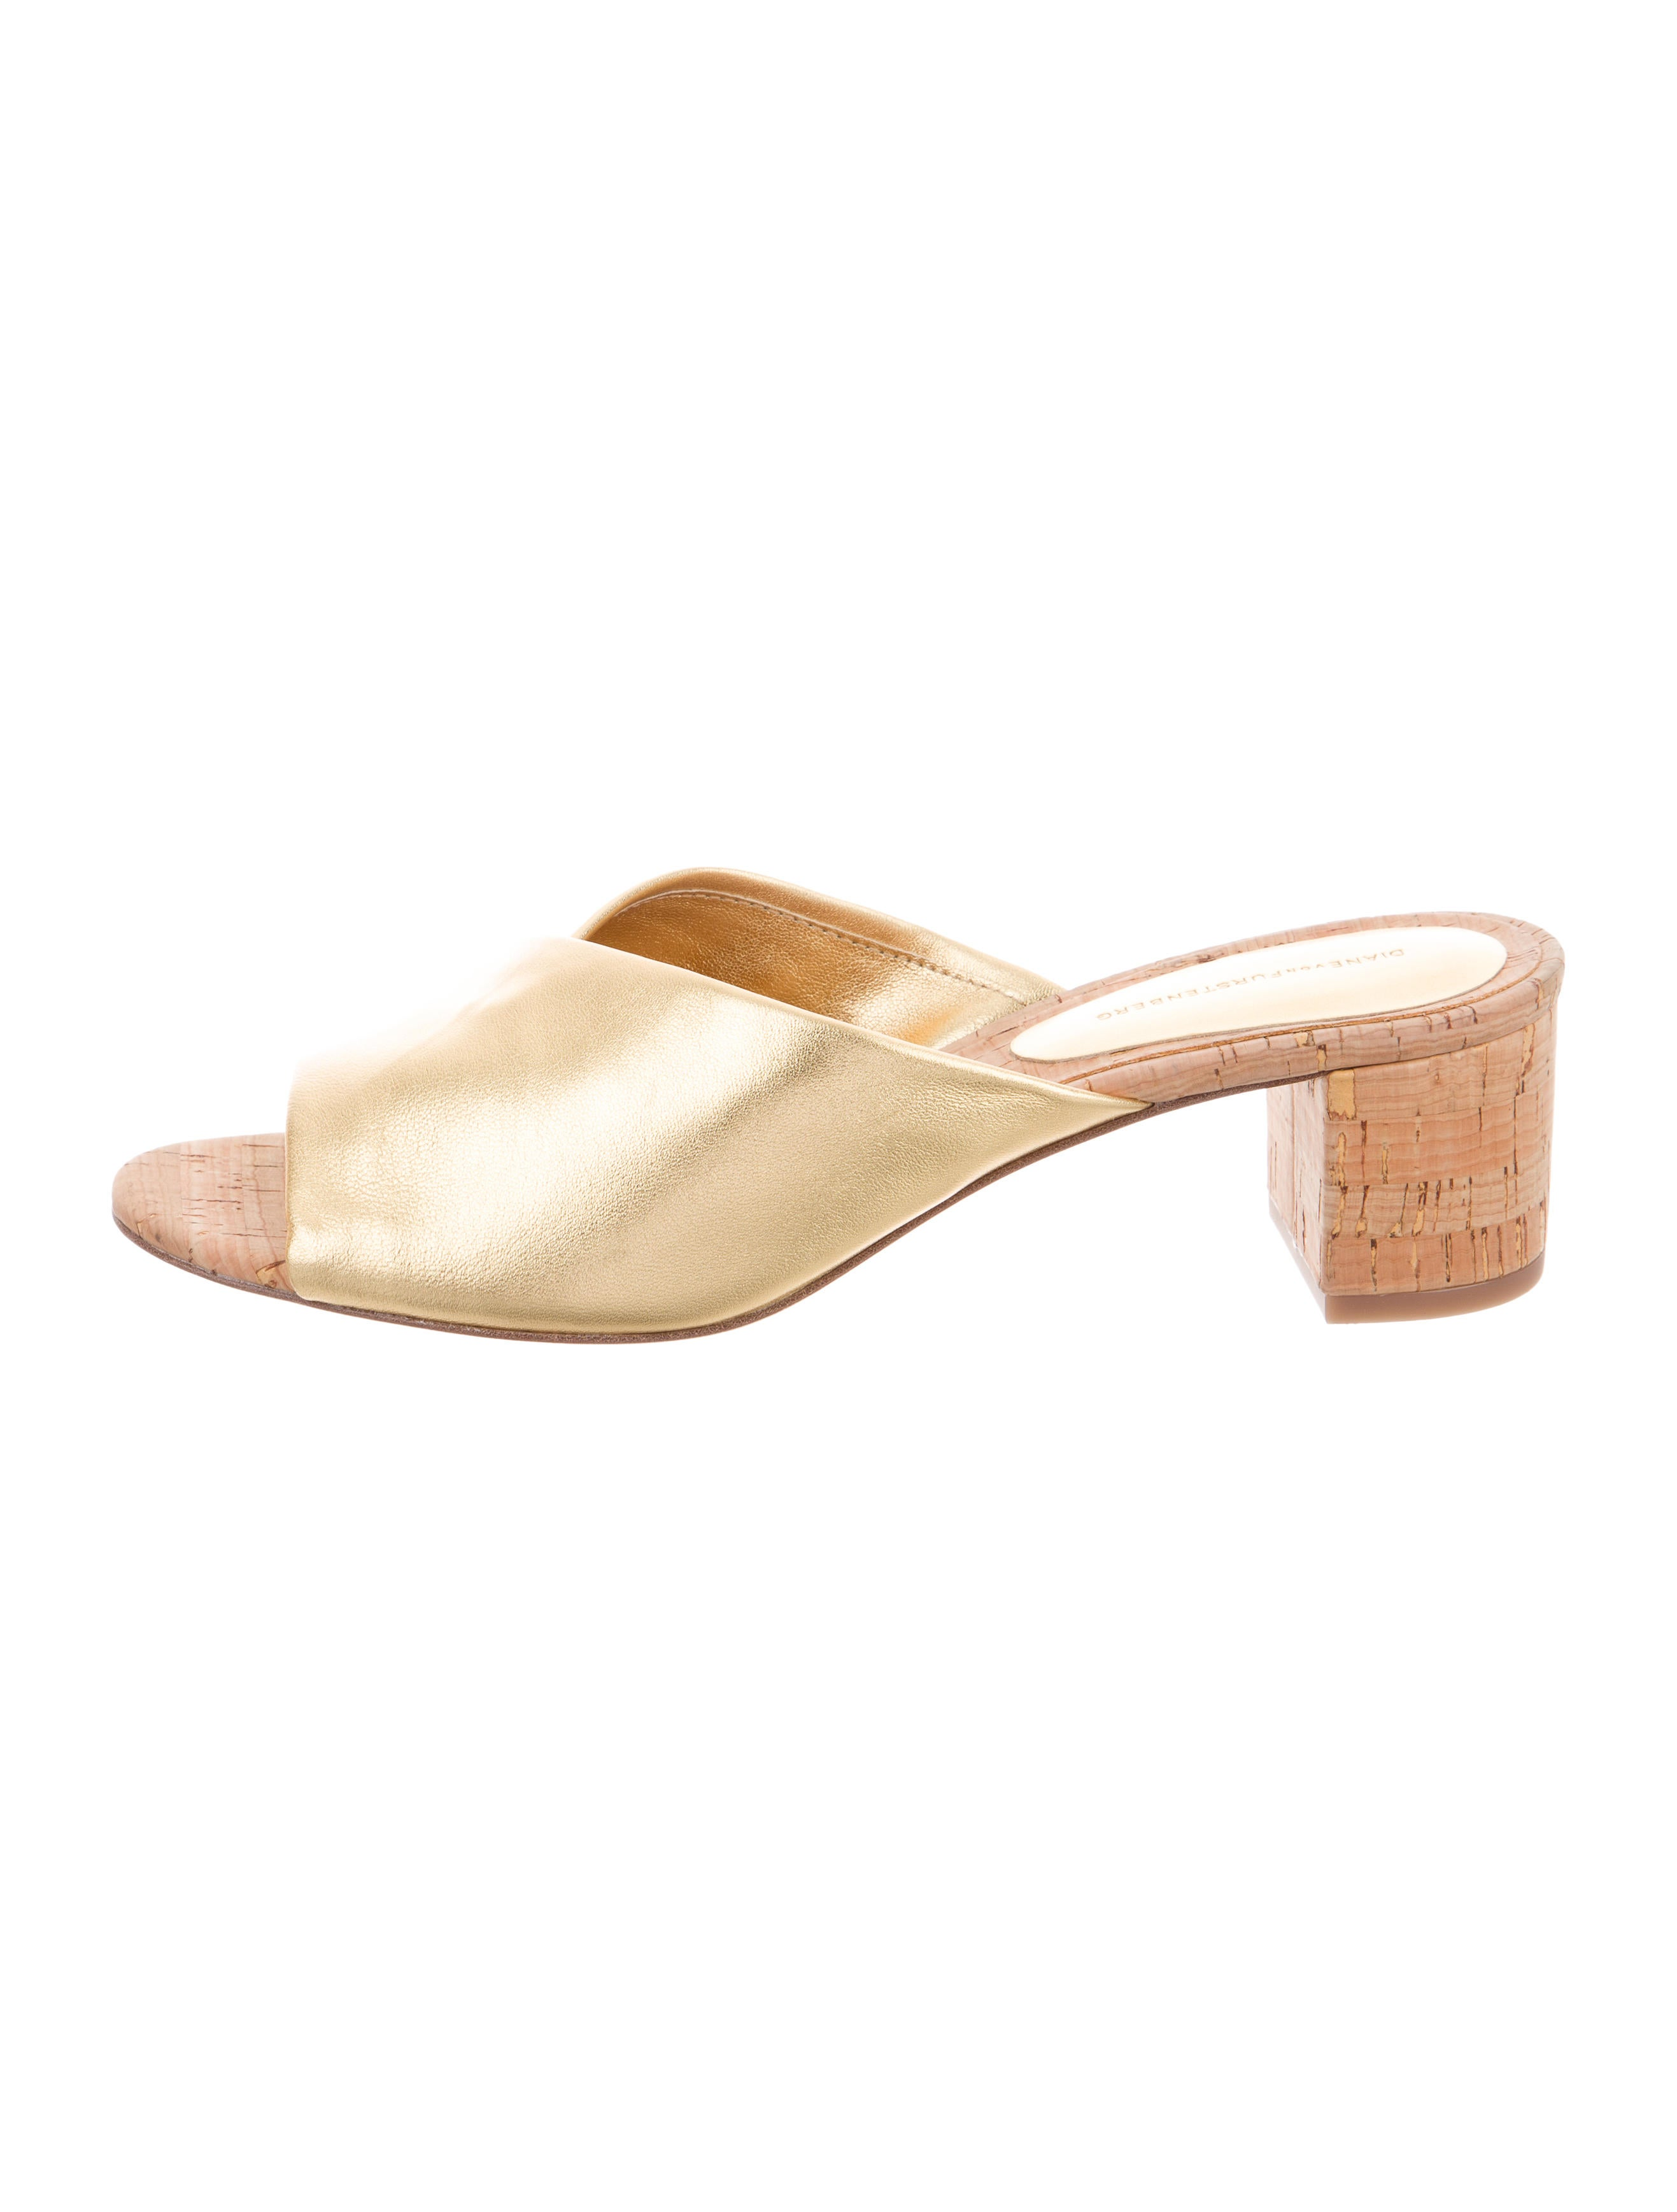 outlet locations for sale Diane von Furstenberg Metallic Slide Sandals w/ Tags outlet find great huge surprise for sale purchase sale online kNXTHG